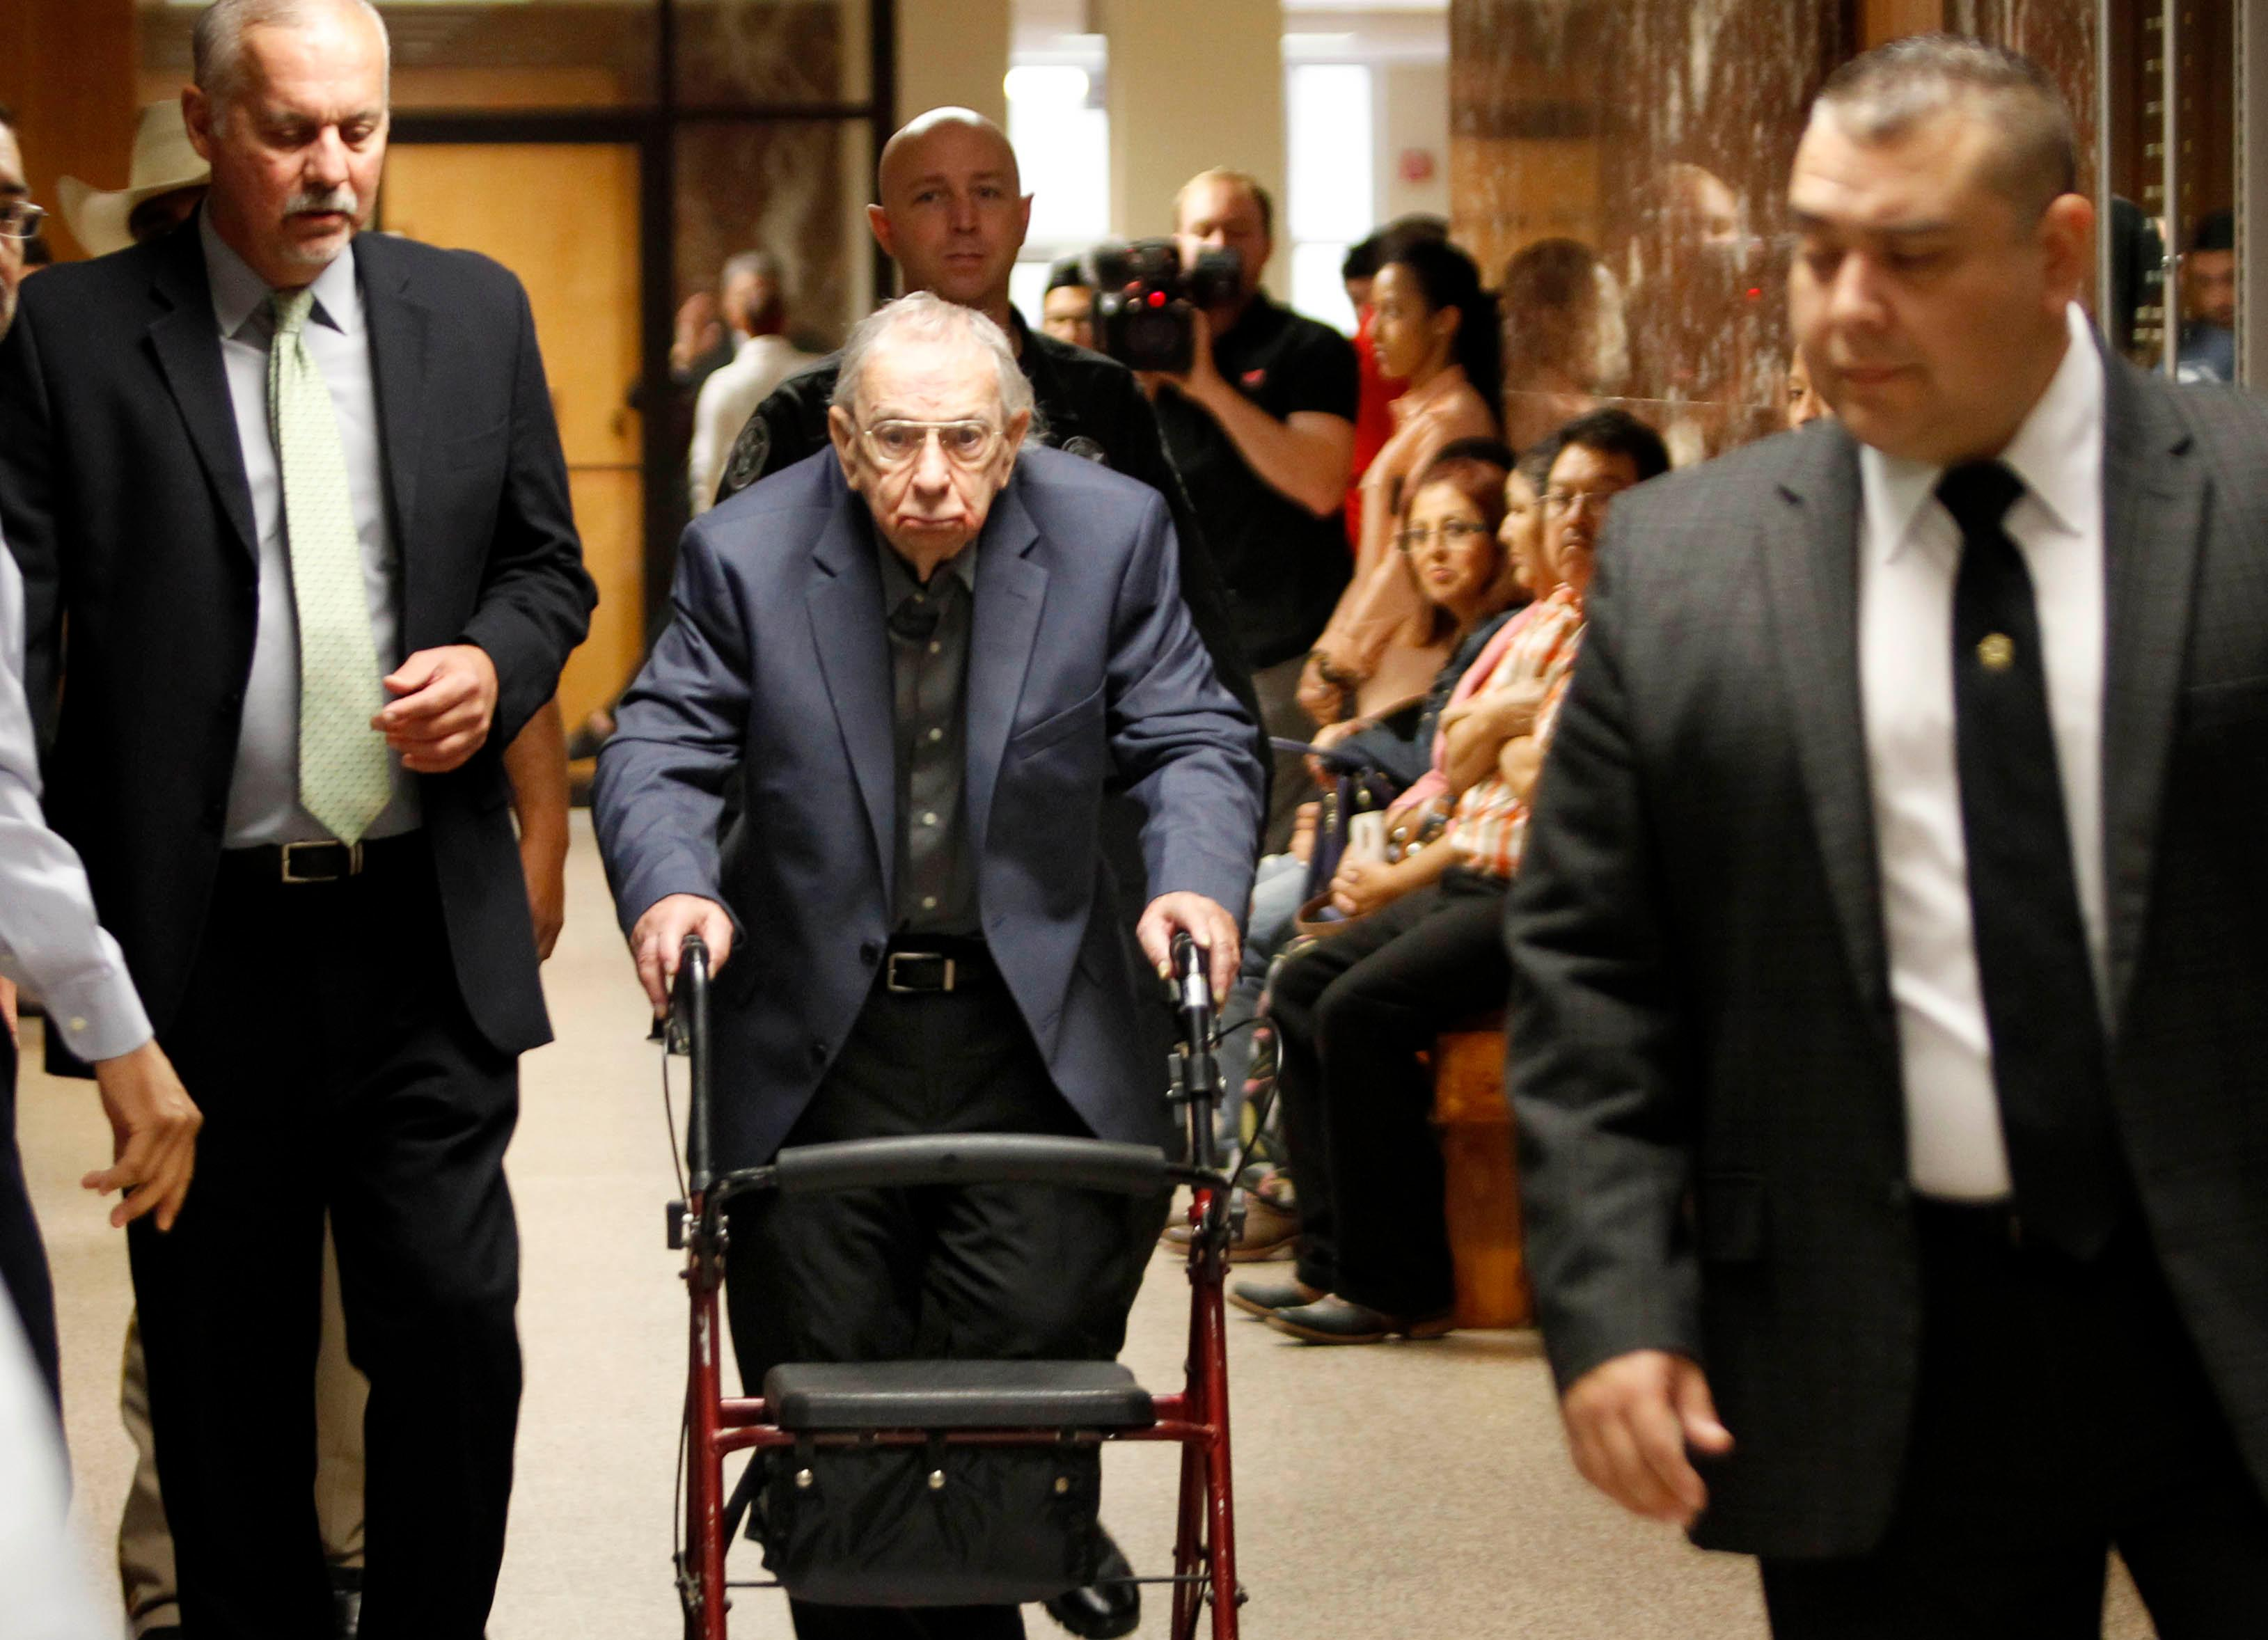 John Bernard Feit walks down the hallway to the 92nd state District Court for the third day of his trial for the murder of Irene Garza Monday, December, 4, 2017, at the Hidalgo County Courthouse in Edinburg.  (Nathan Lambrecht/The Monitor/Pool)